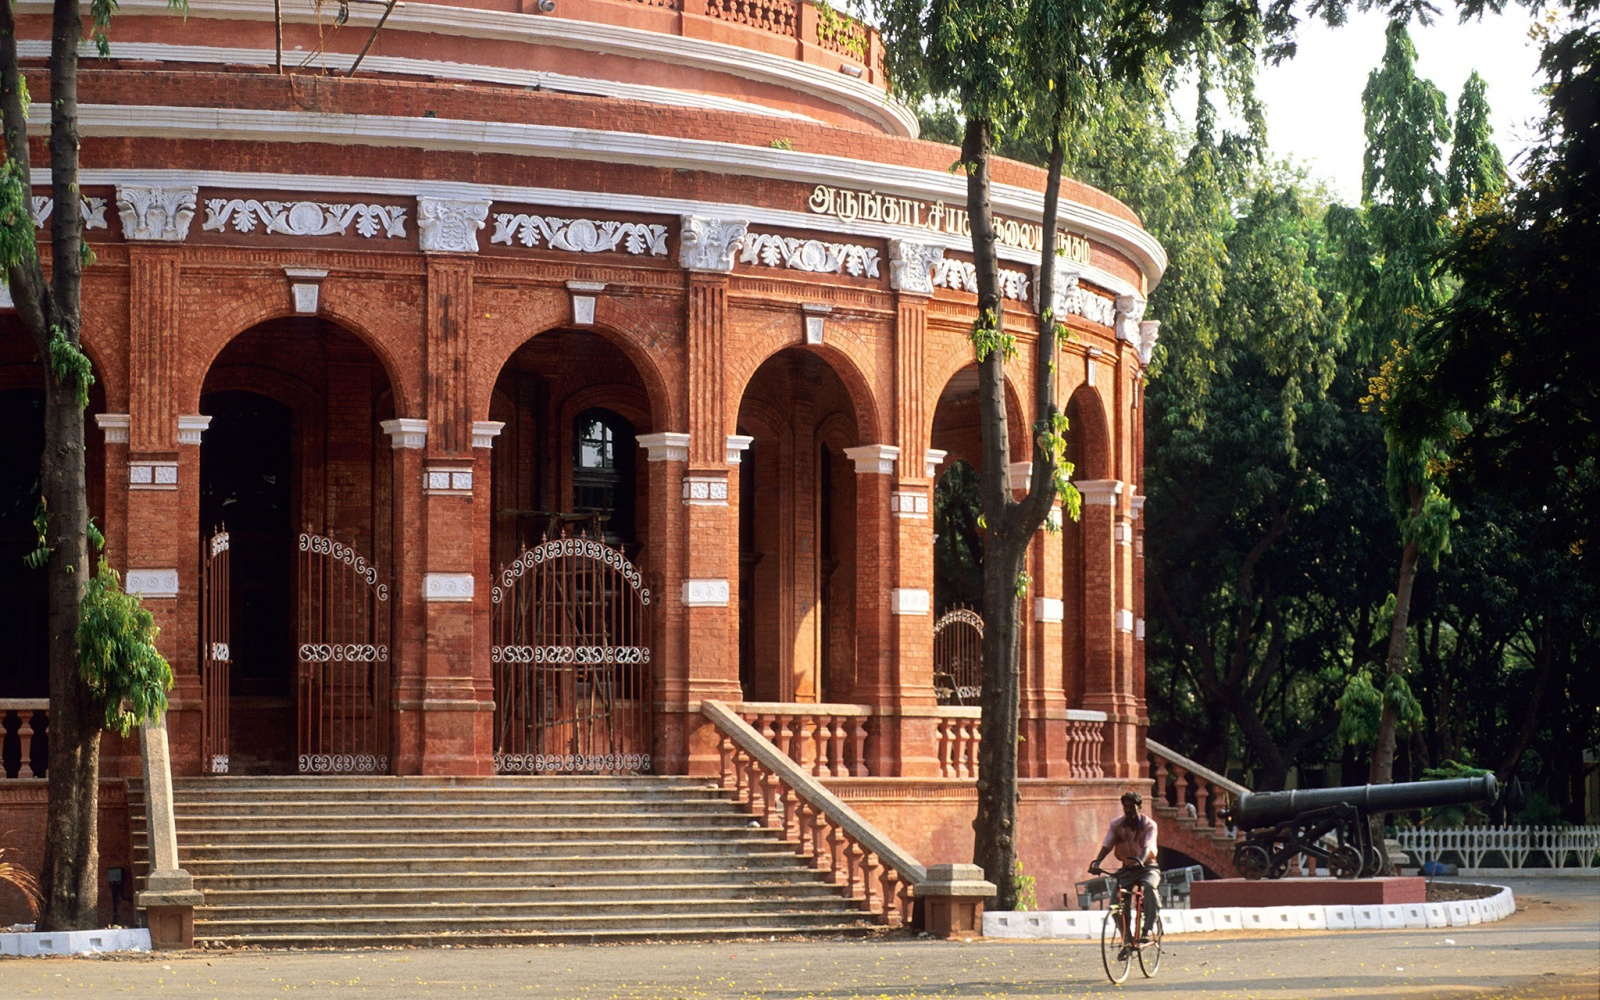 Connemara Public Library, Chennai, India